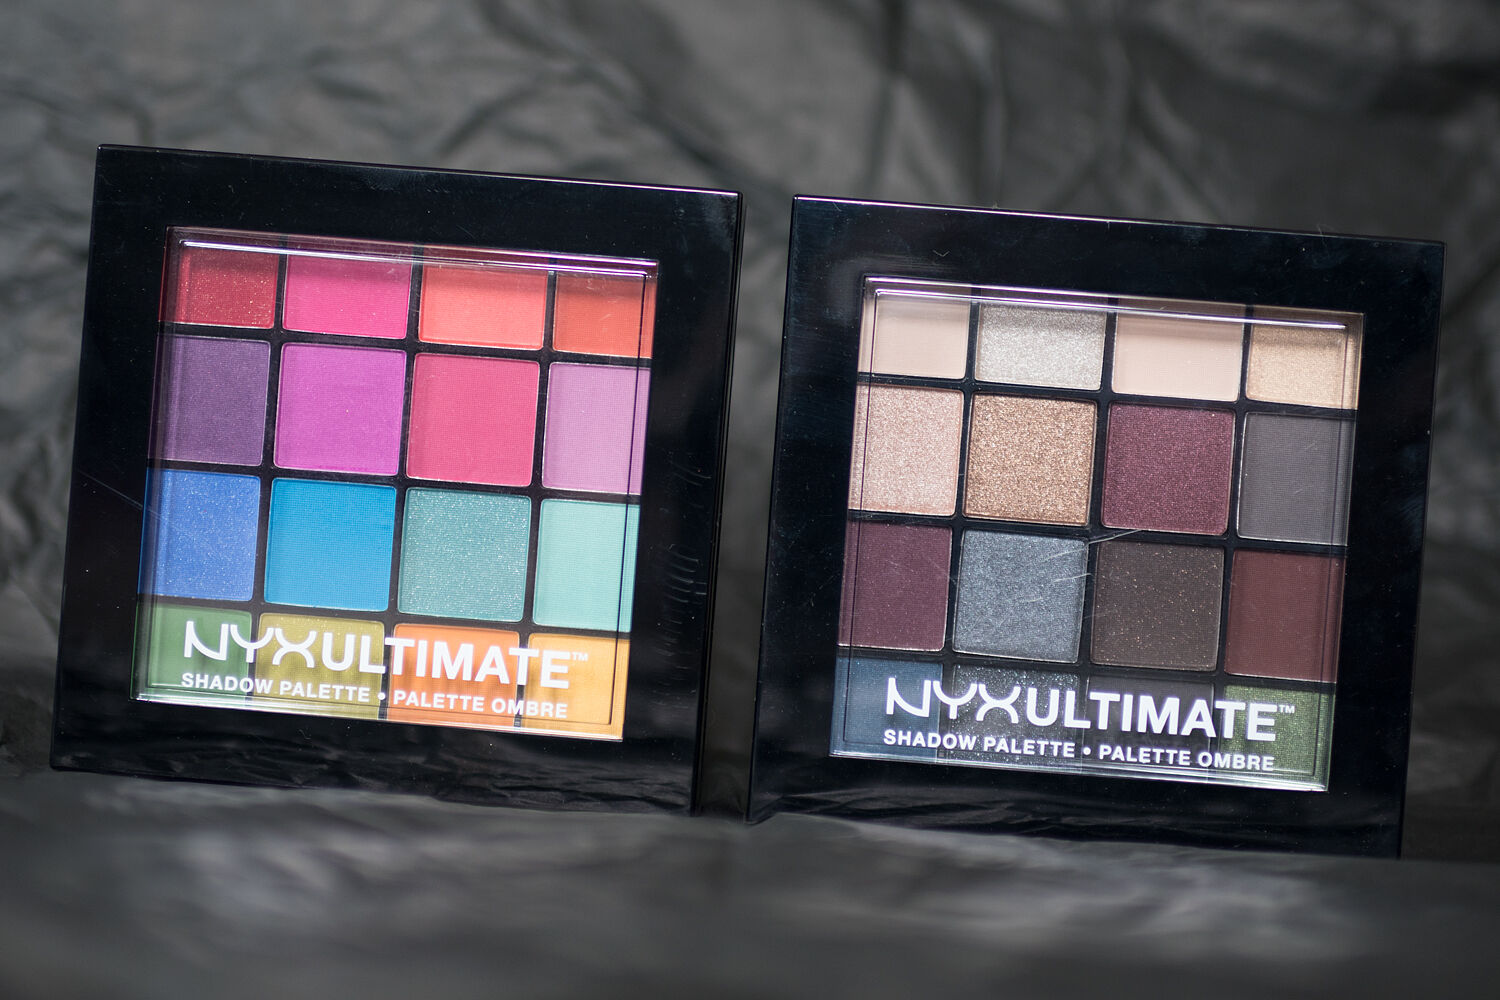 nyx the halo look Ultimate Shadow Palette Pro Lip Cream Palette